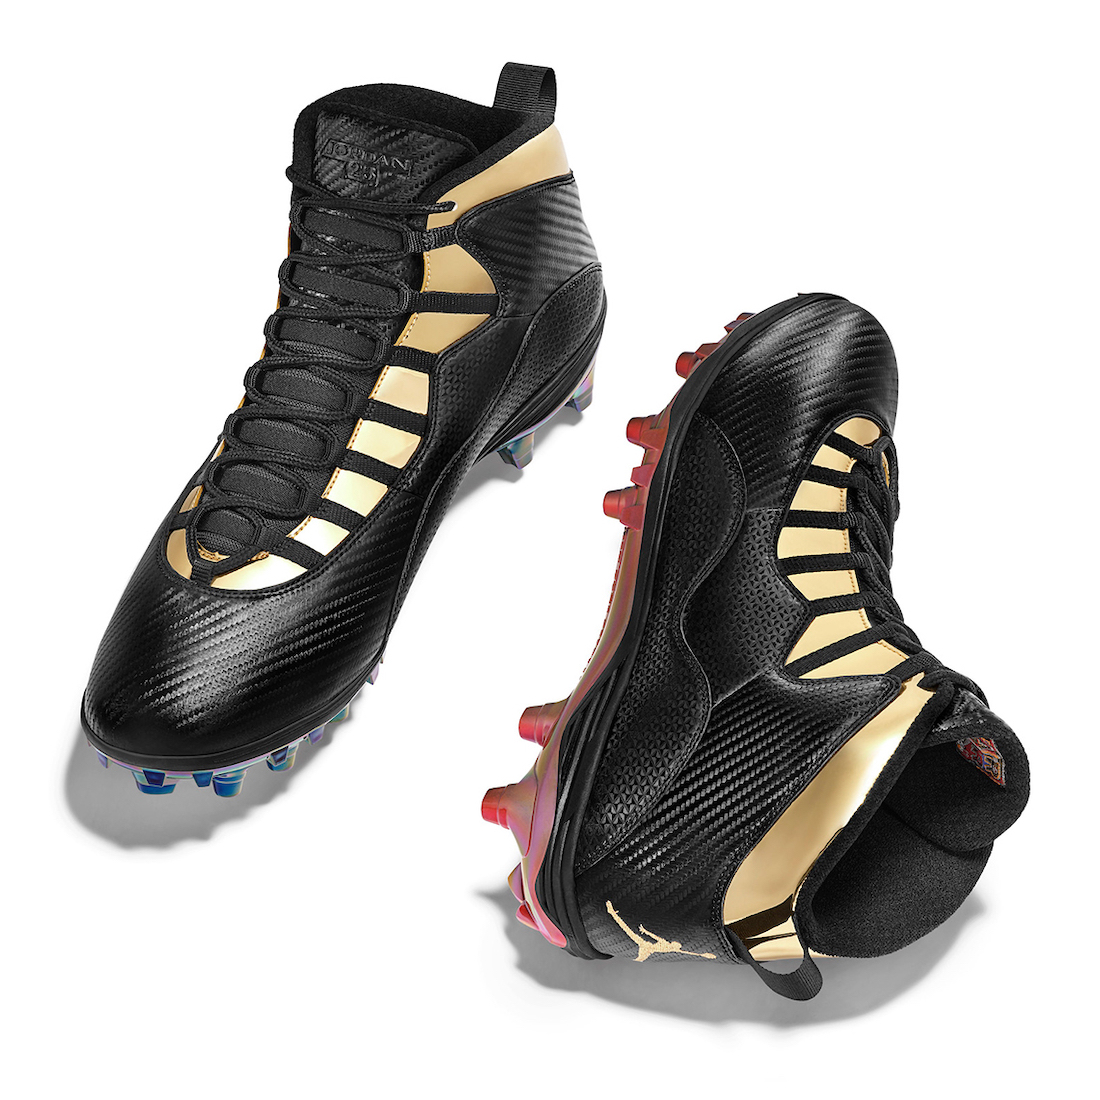 Cam Jordan Air Jordan 10 NFL 2020 PE Cleats